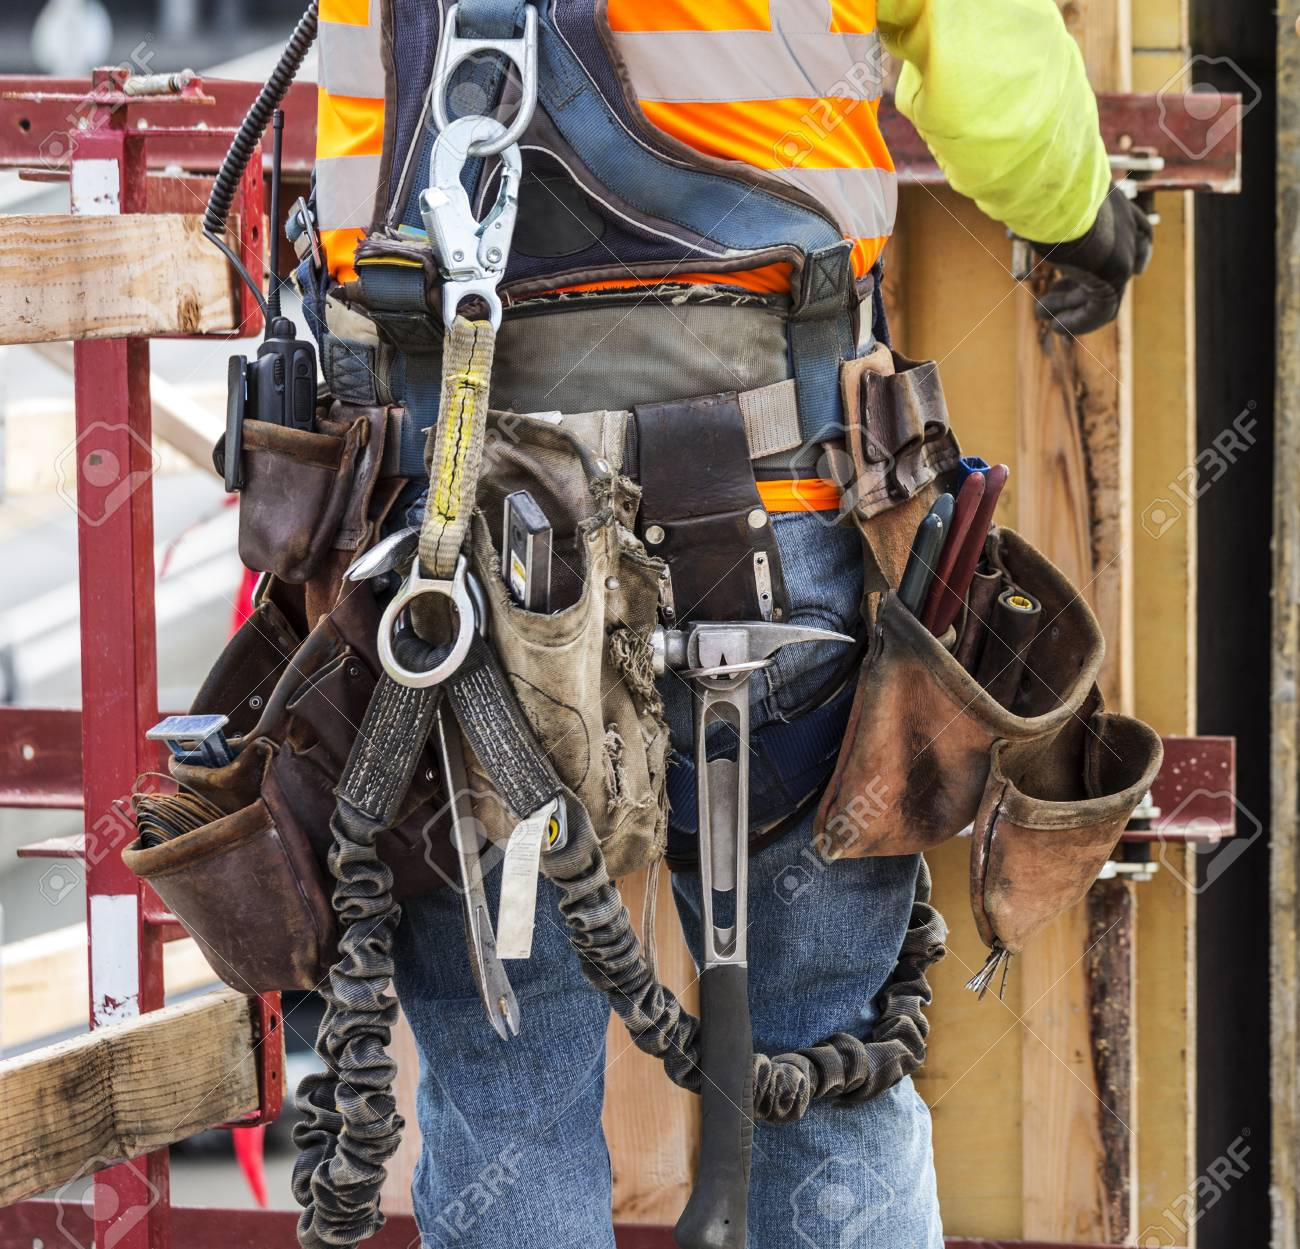 97169767 hispanic worker wearing tool belt at construction site hispanic worker wearing tool belt at construction site stock photo